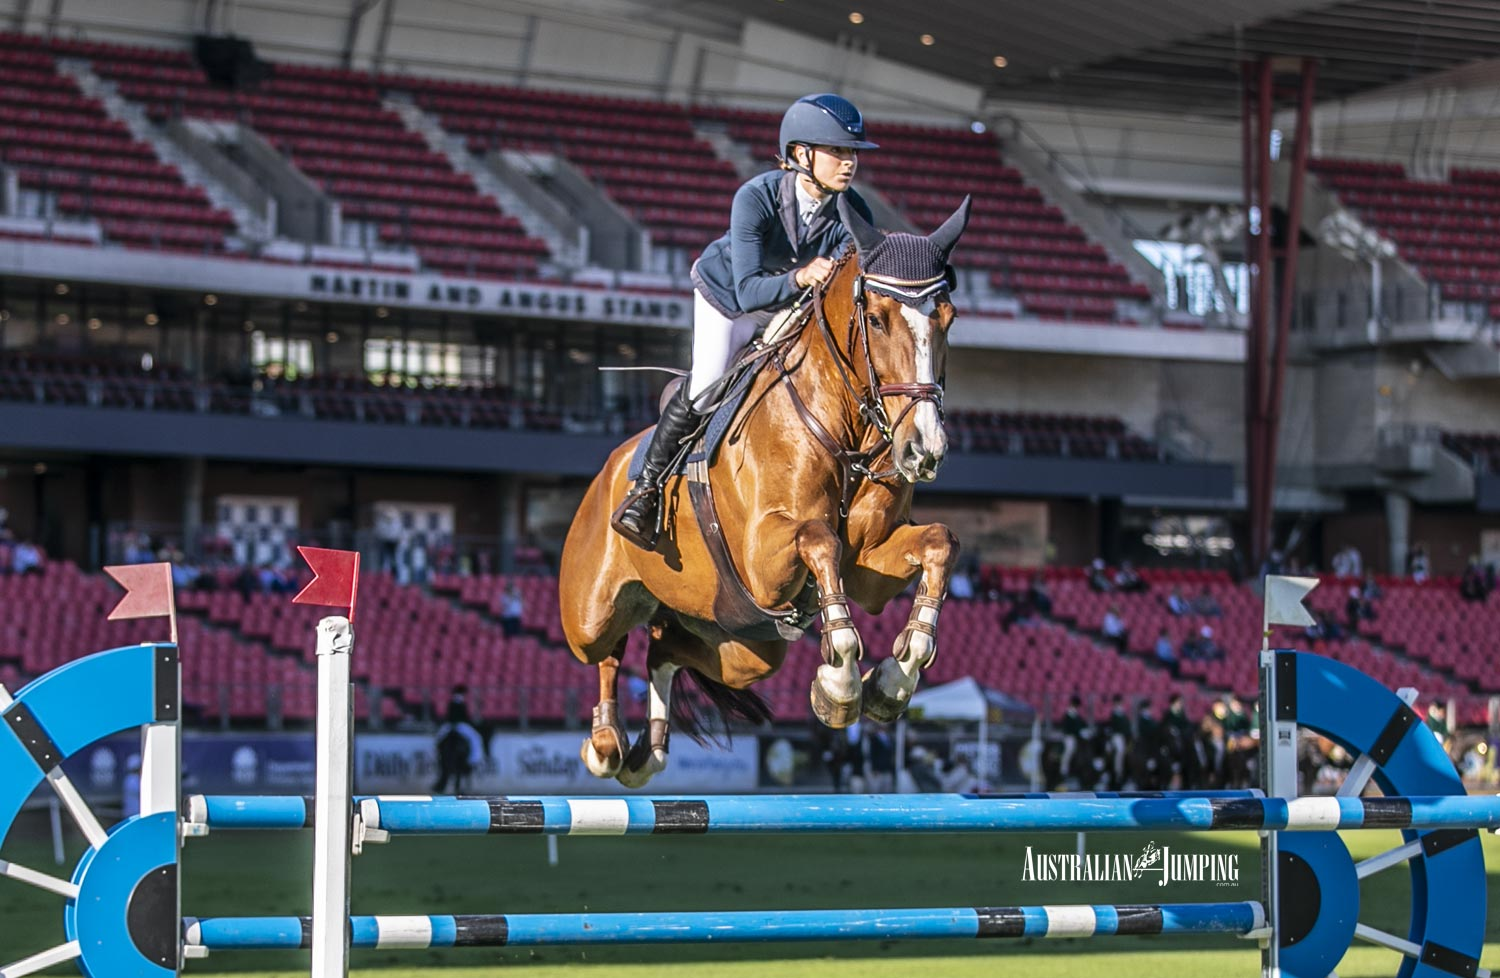 Wansey shines in the Young Rider at Sydney Royal